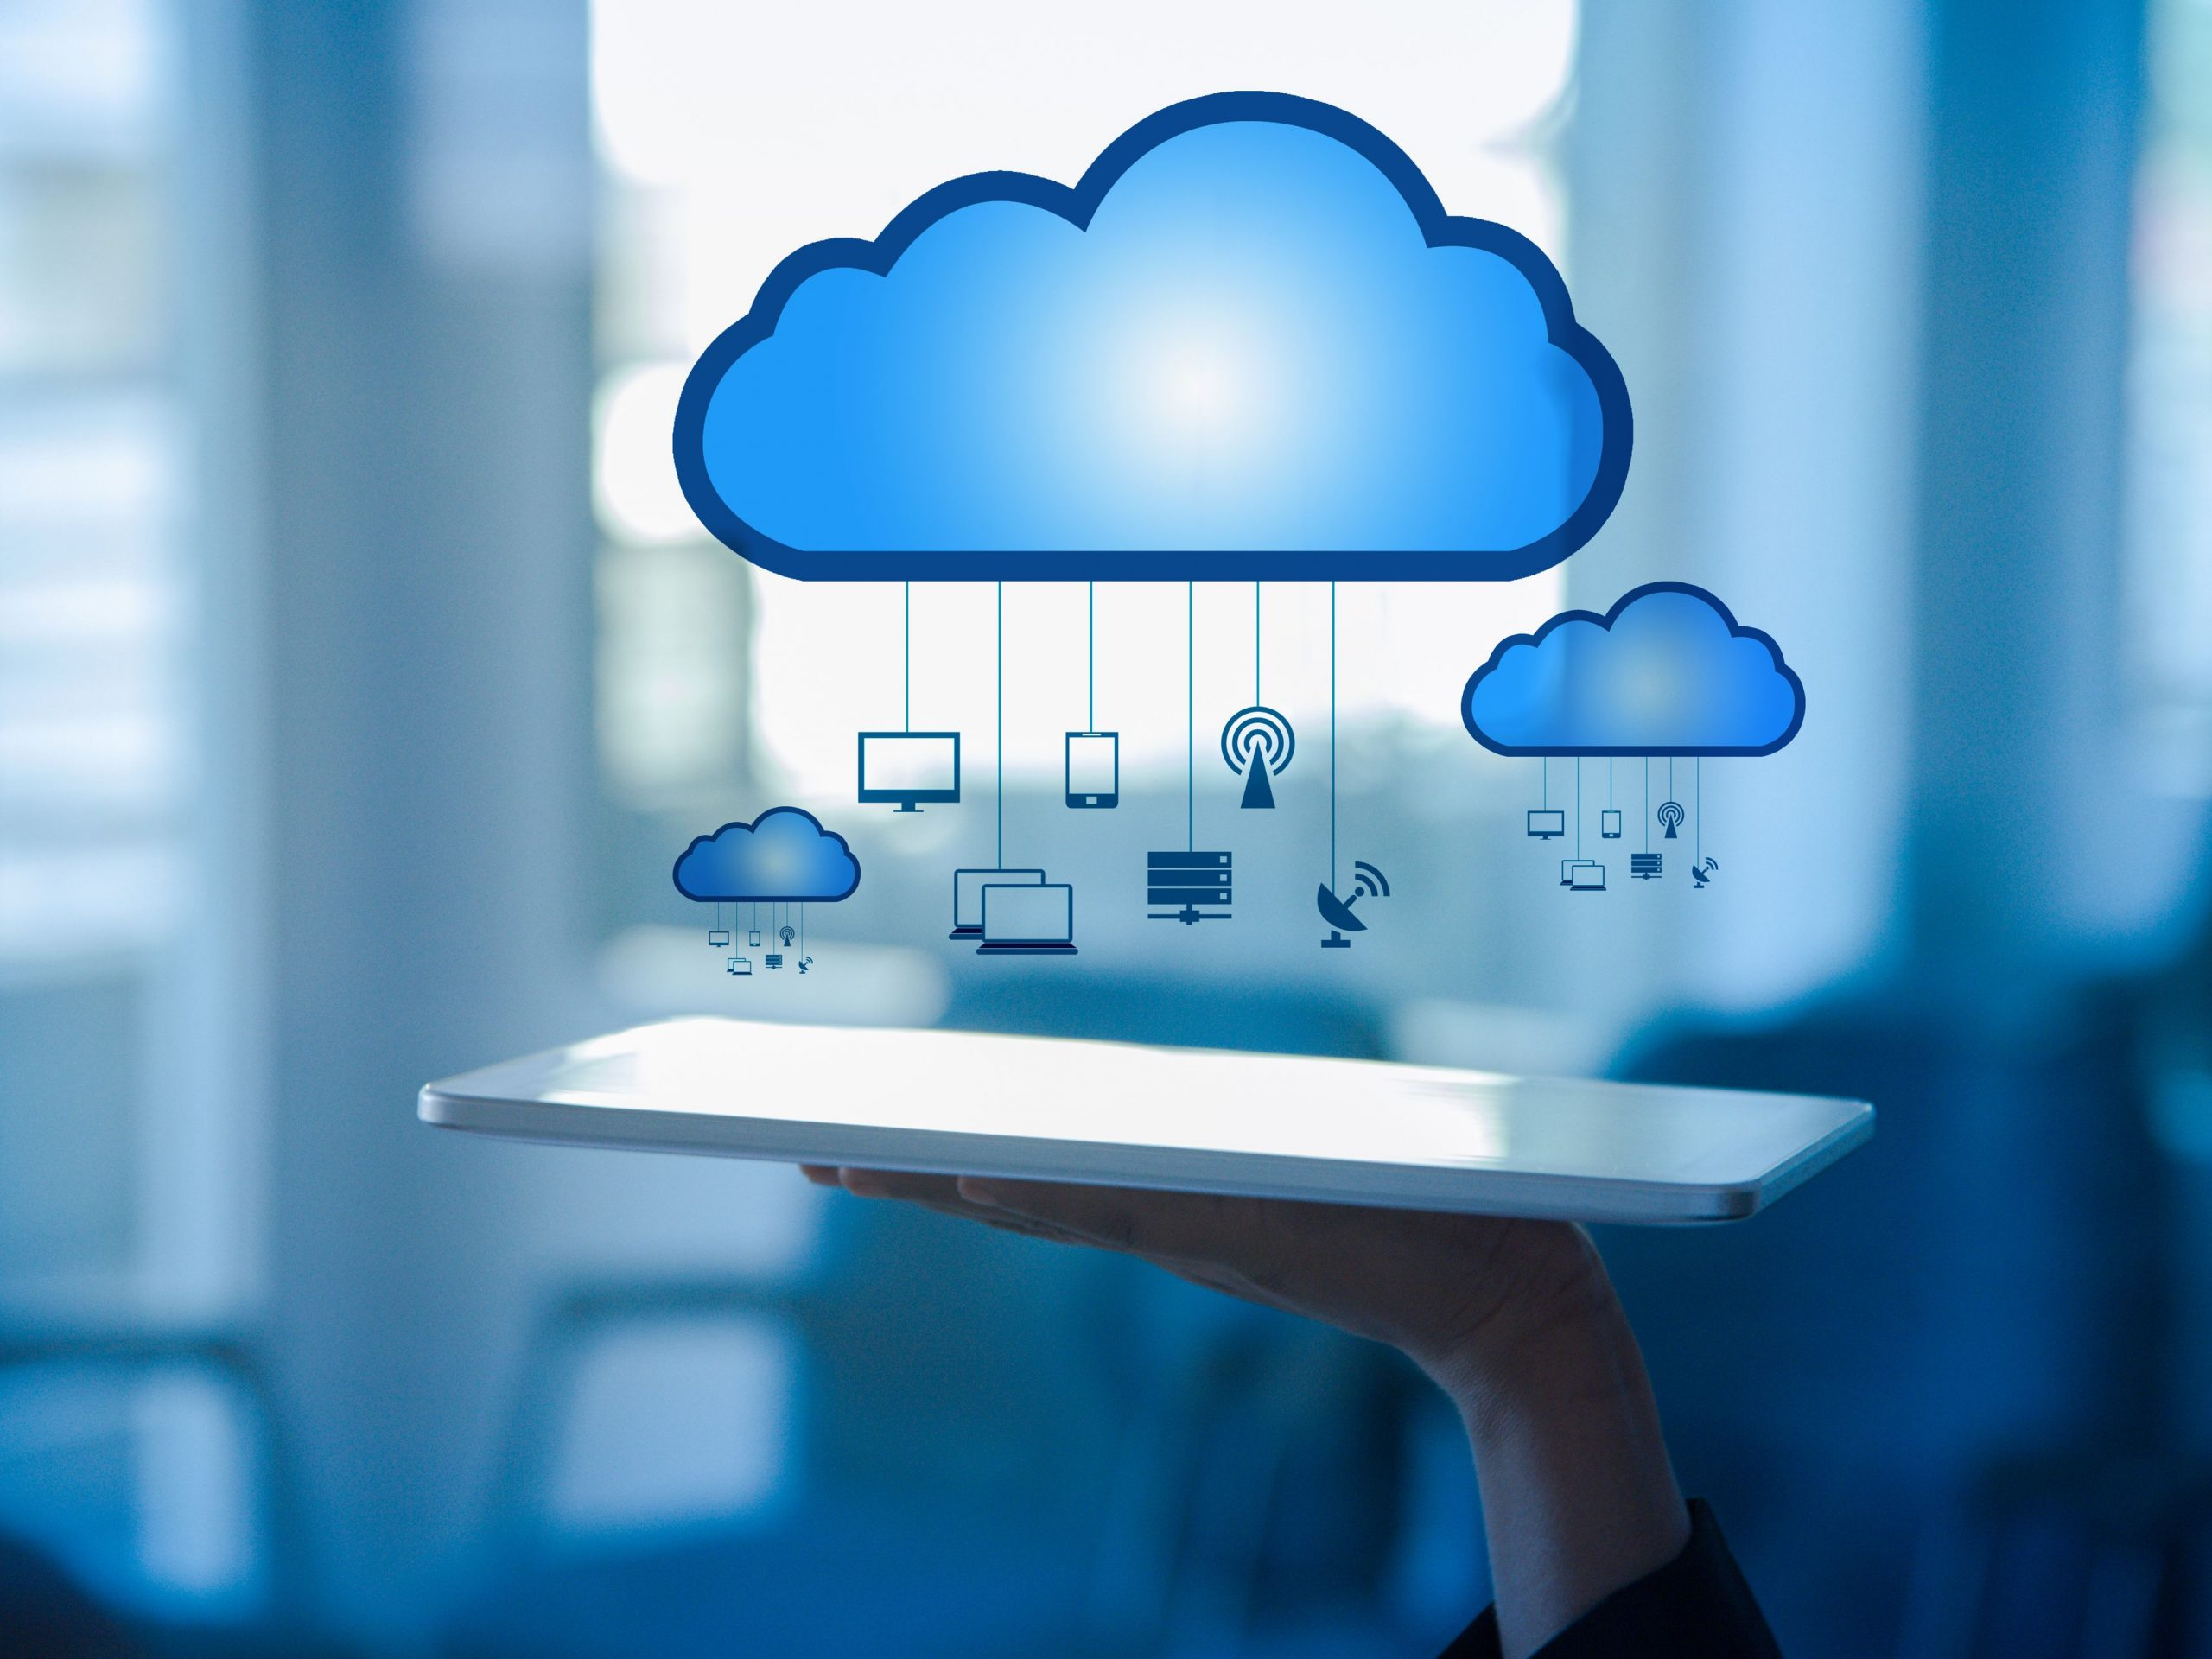 WHAT YOU NEED TO KNOW ABOUT CLOUD ACCOUNTING SOFTWARE